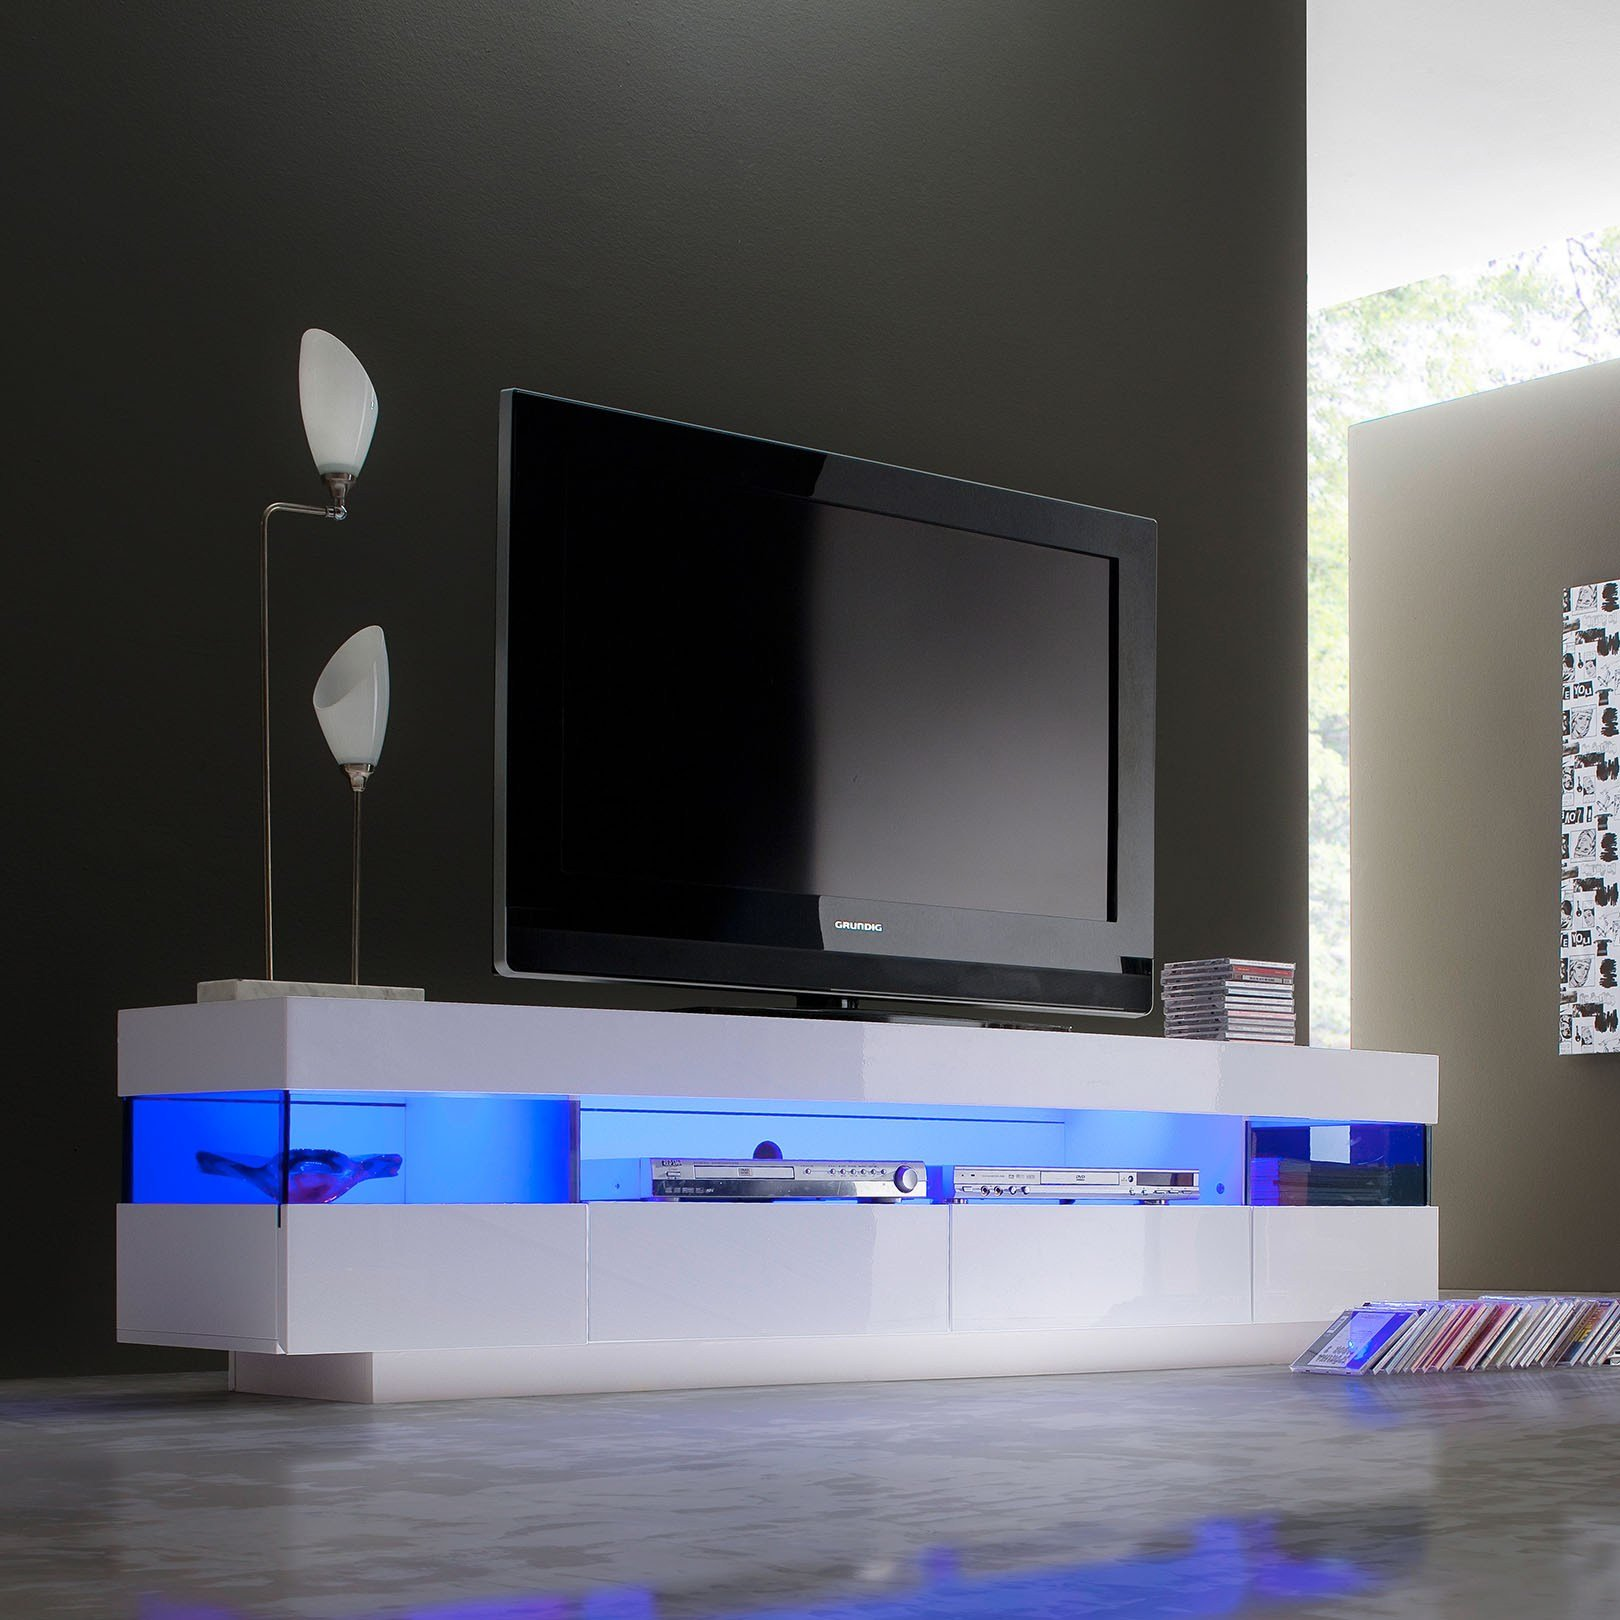 Latest TV Trends With LED Lights